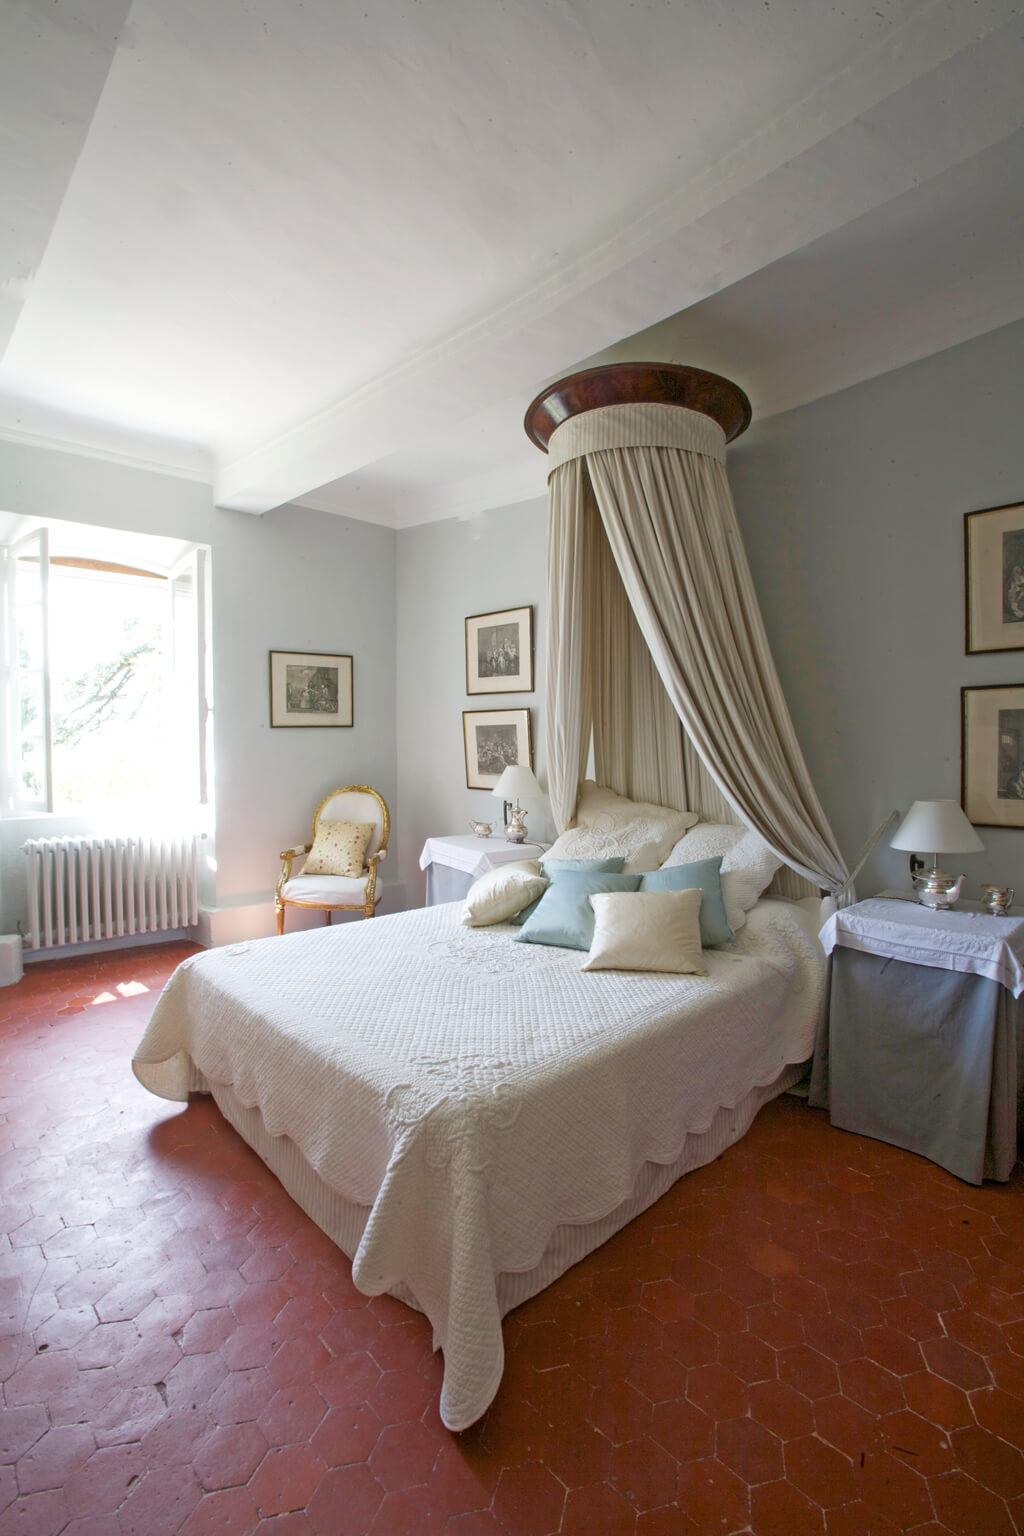 Tranquil blue walls in a French country bedroom.